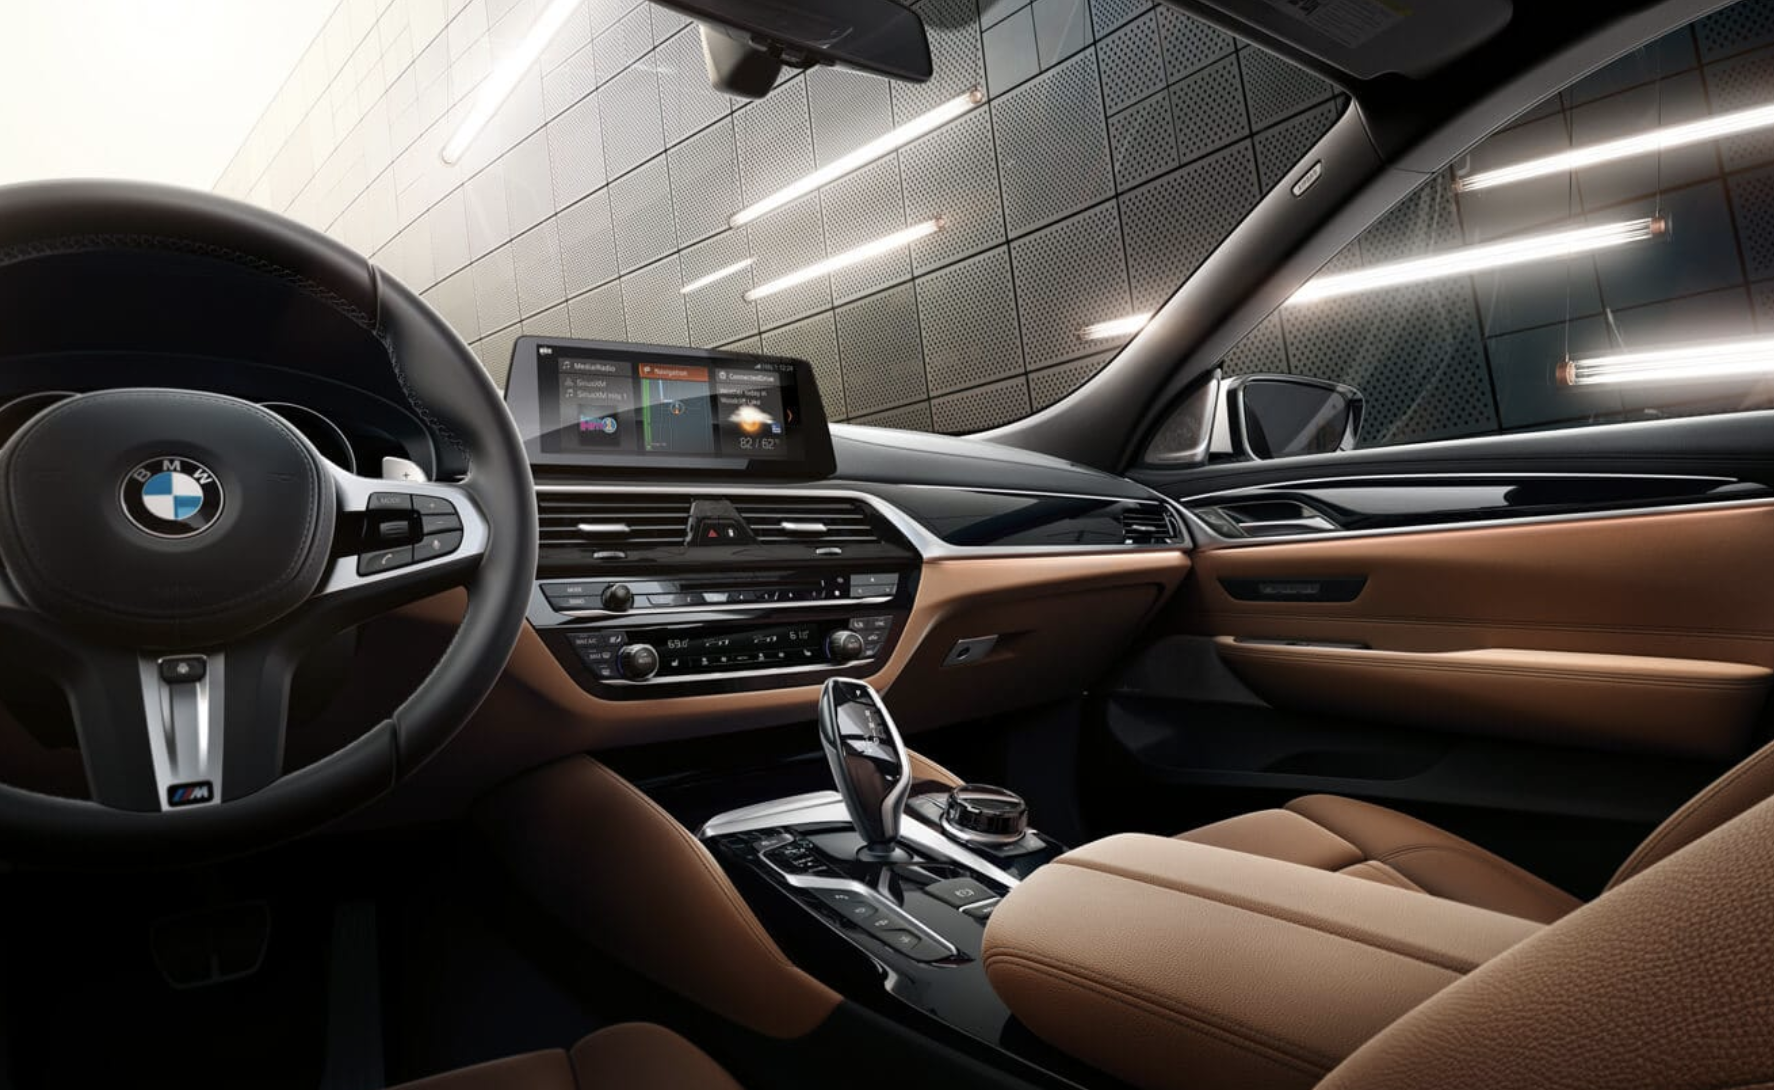 An interior shot of the BMW 6 Series showing the cockpit.